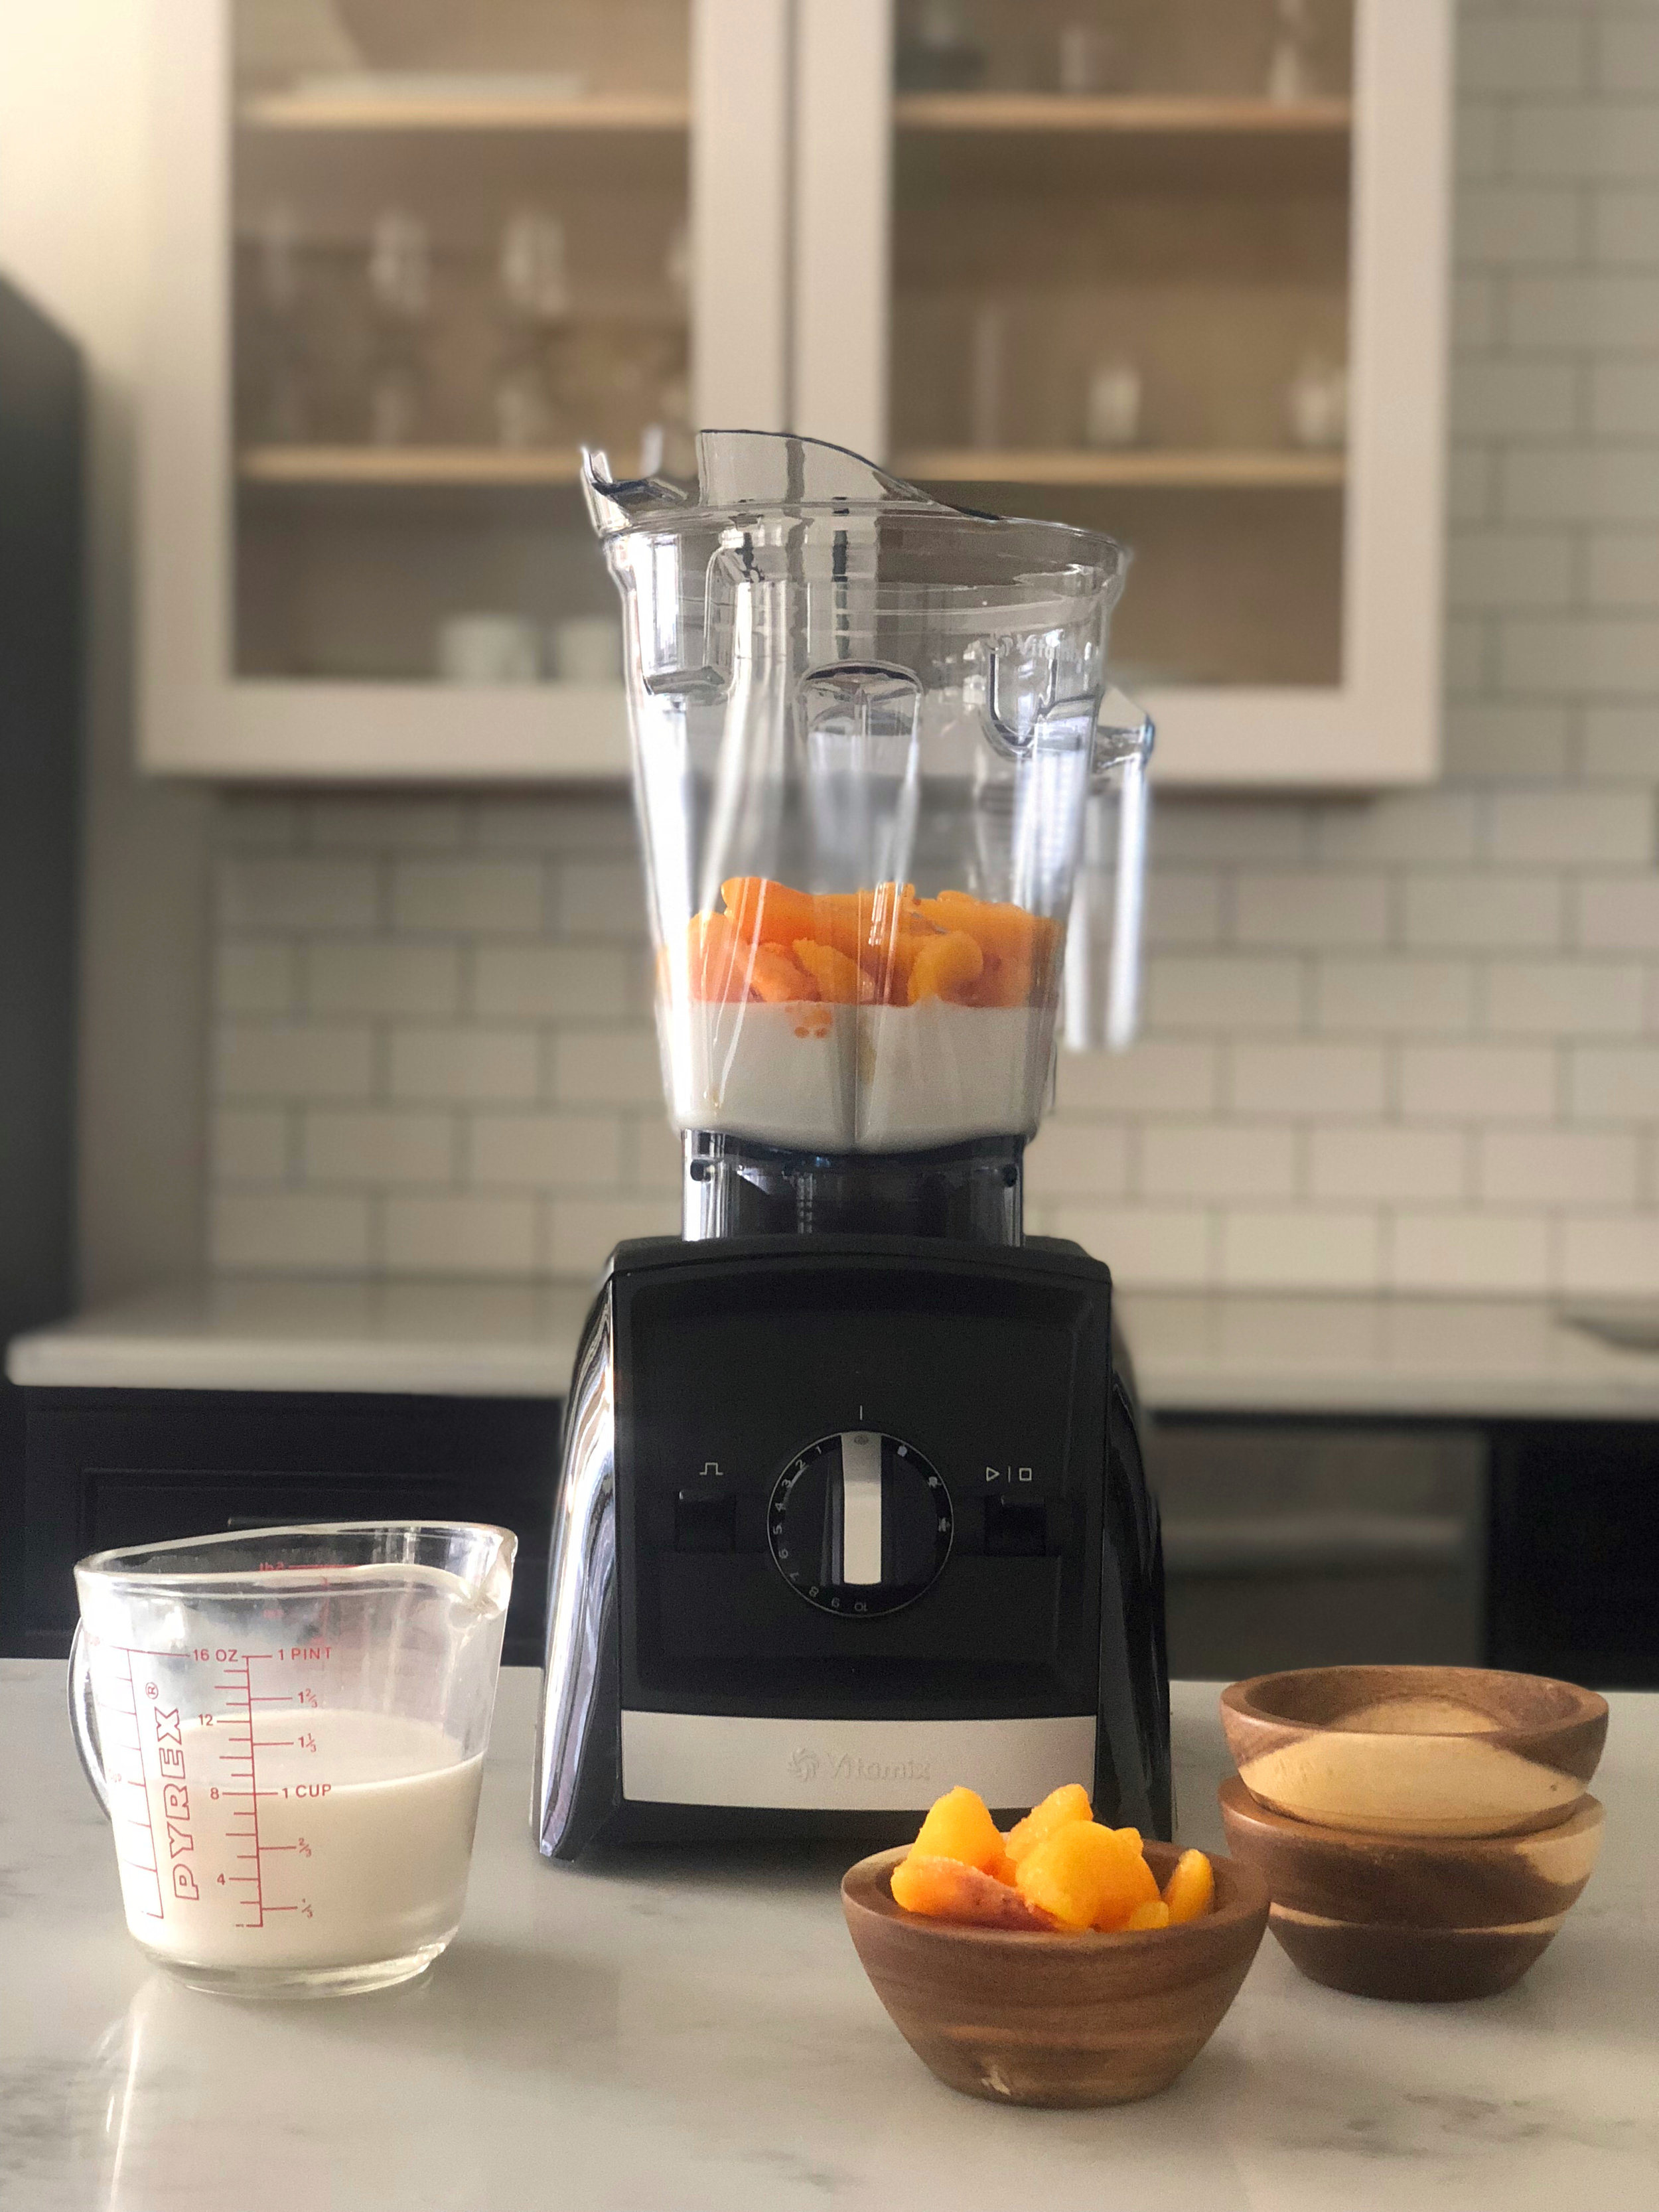 Taste of Spring with Nebraska Furniture Mart, Mellow Yellow Smoothie Recipe